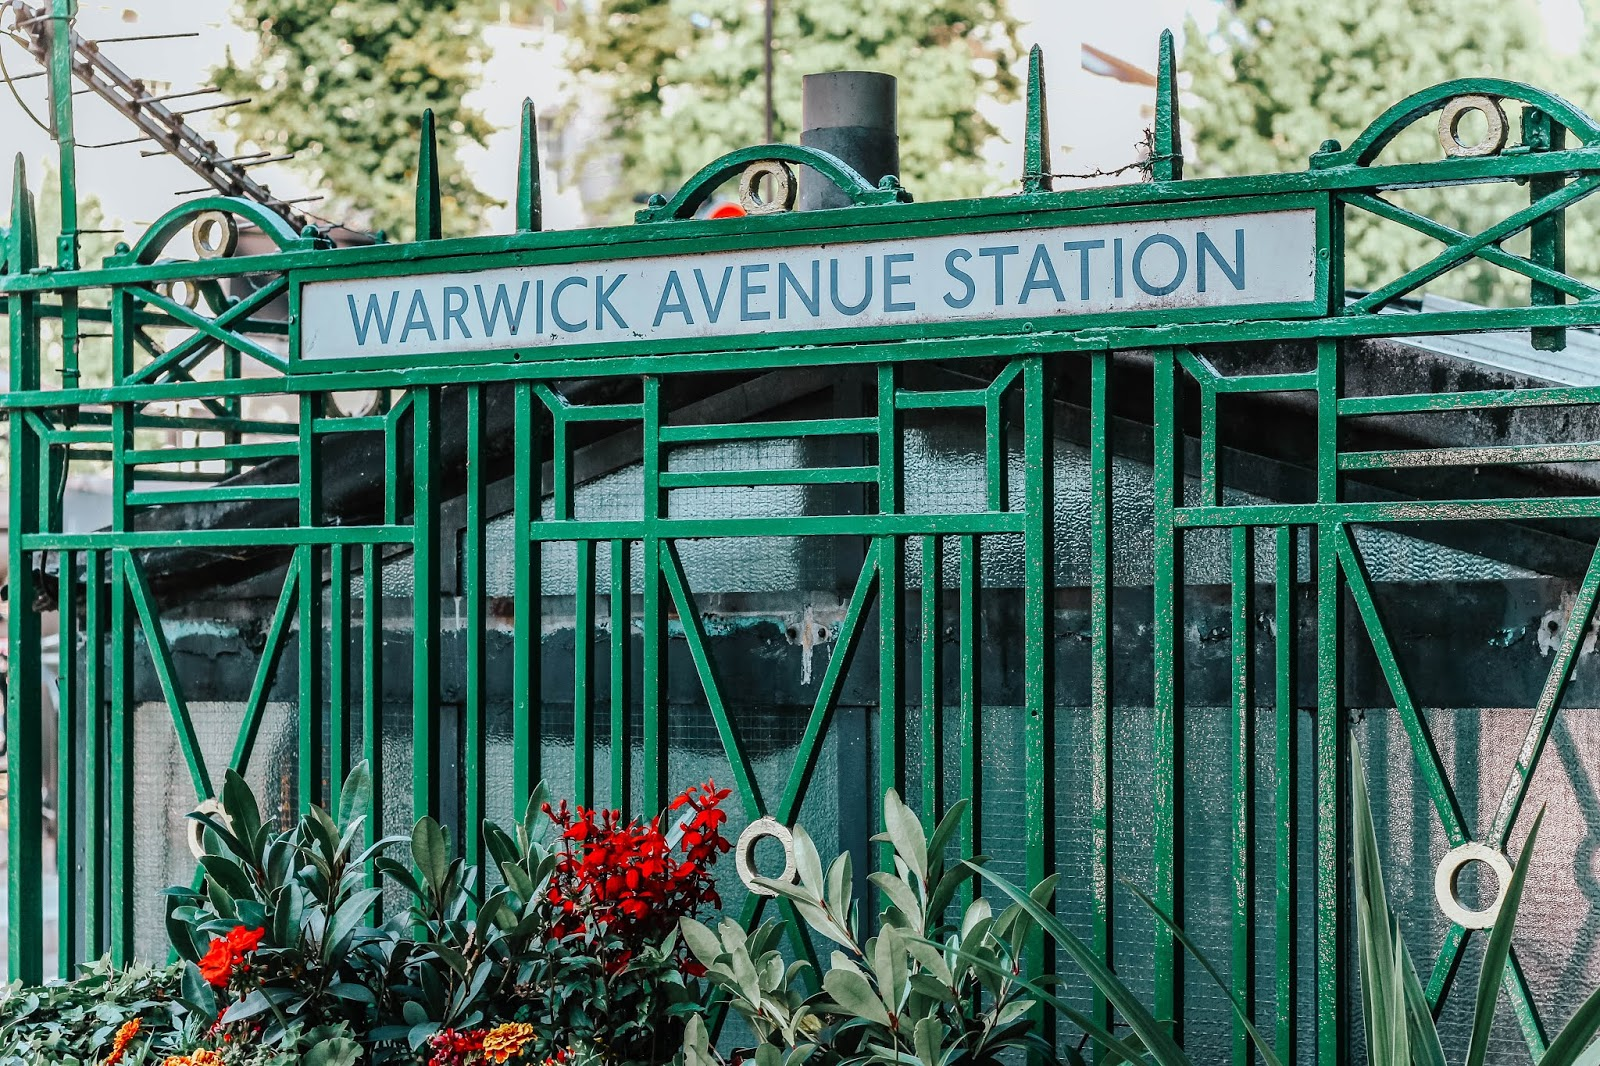 Little Venice London Warwick Avenue Station Sign